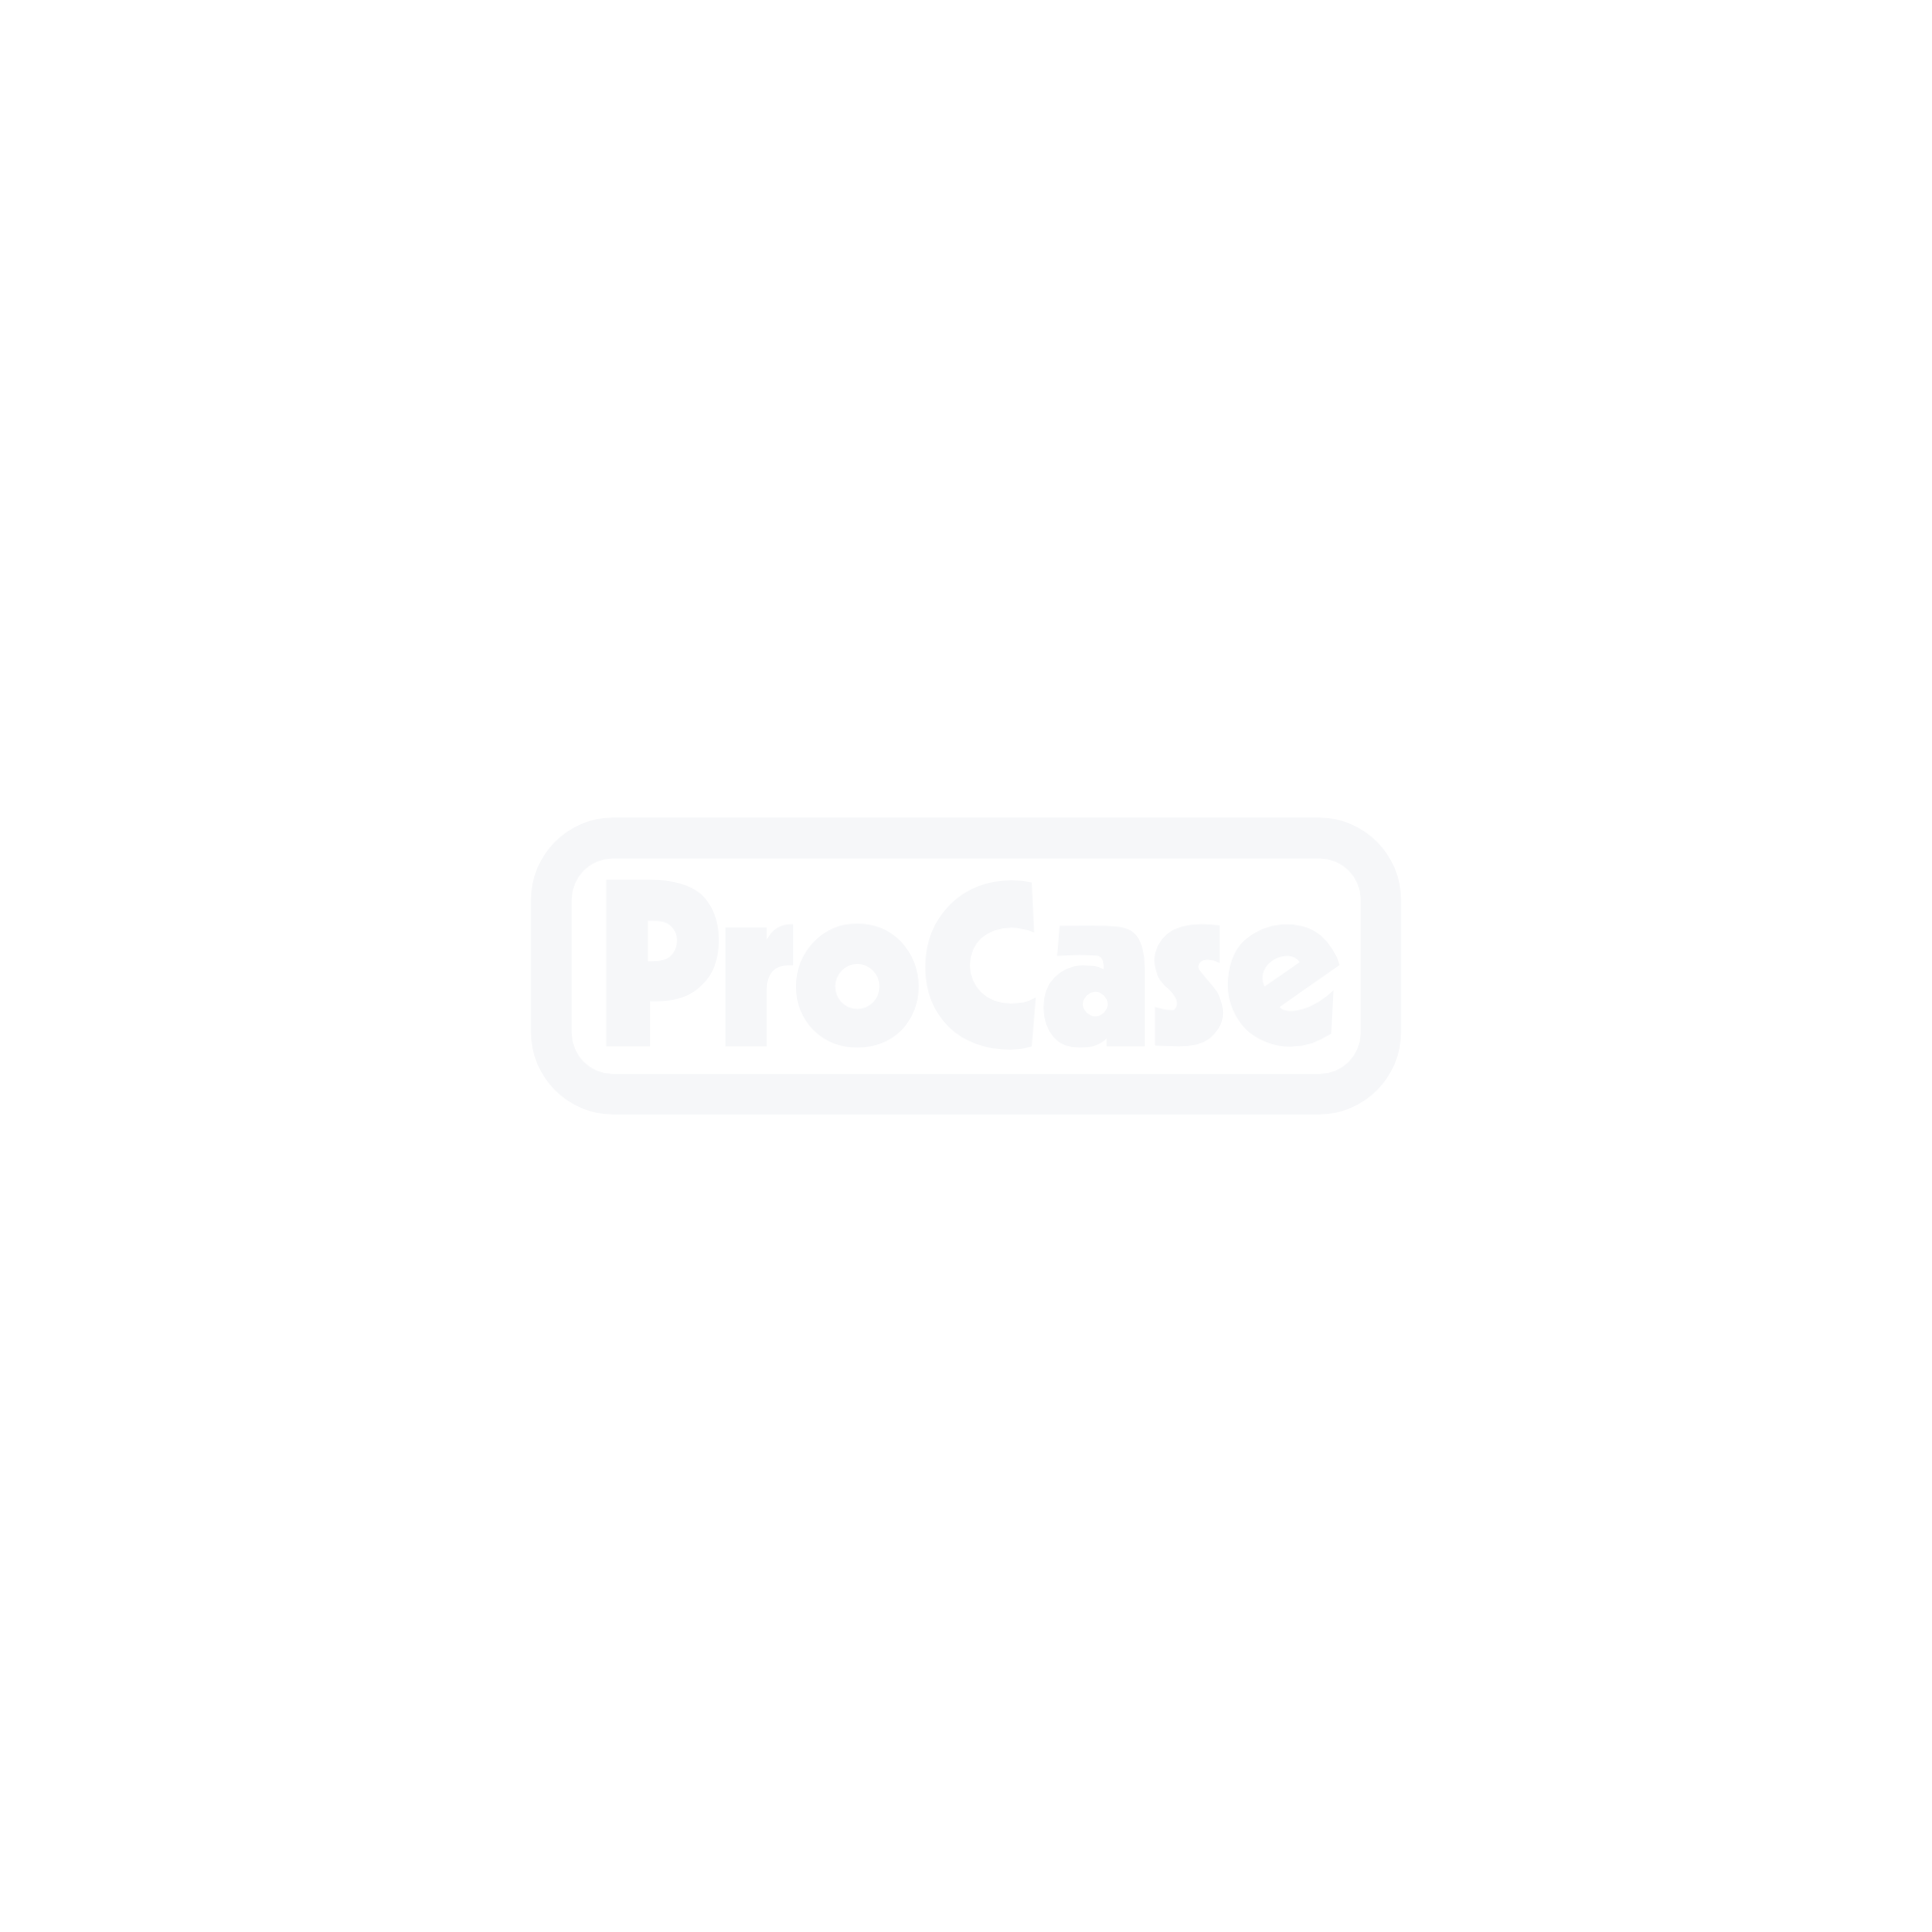 Essential-Rack 4HE 600 tief